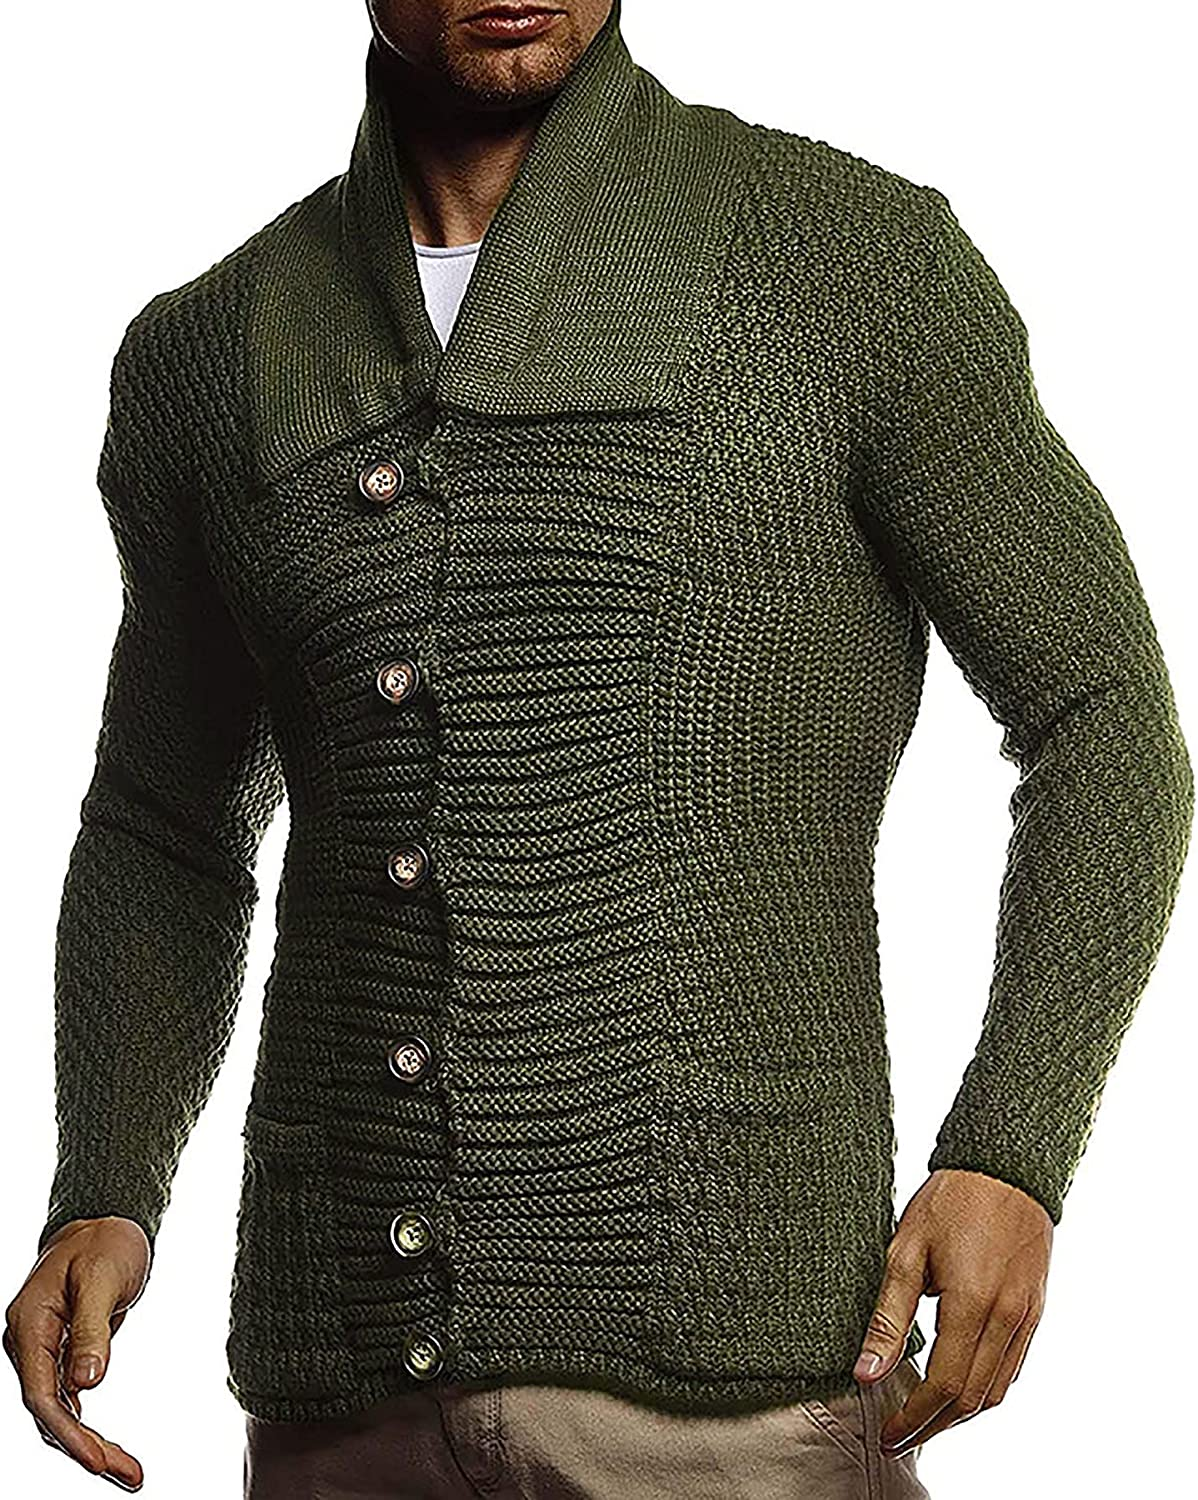 Men's Casual Long-Sleeve Lapel Cardigan Sweater Button Down Knitwear with Pockets Chunky Thermal